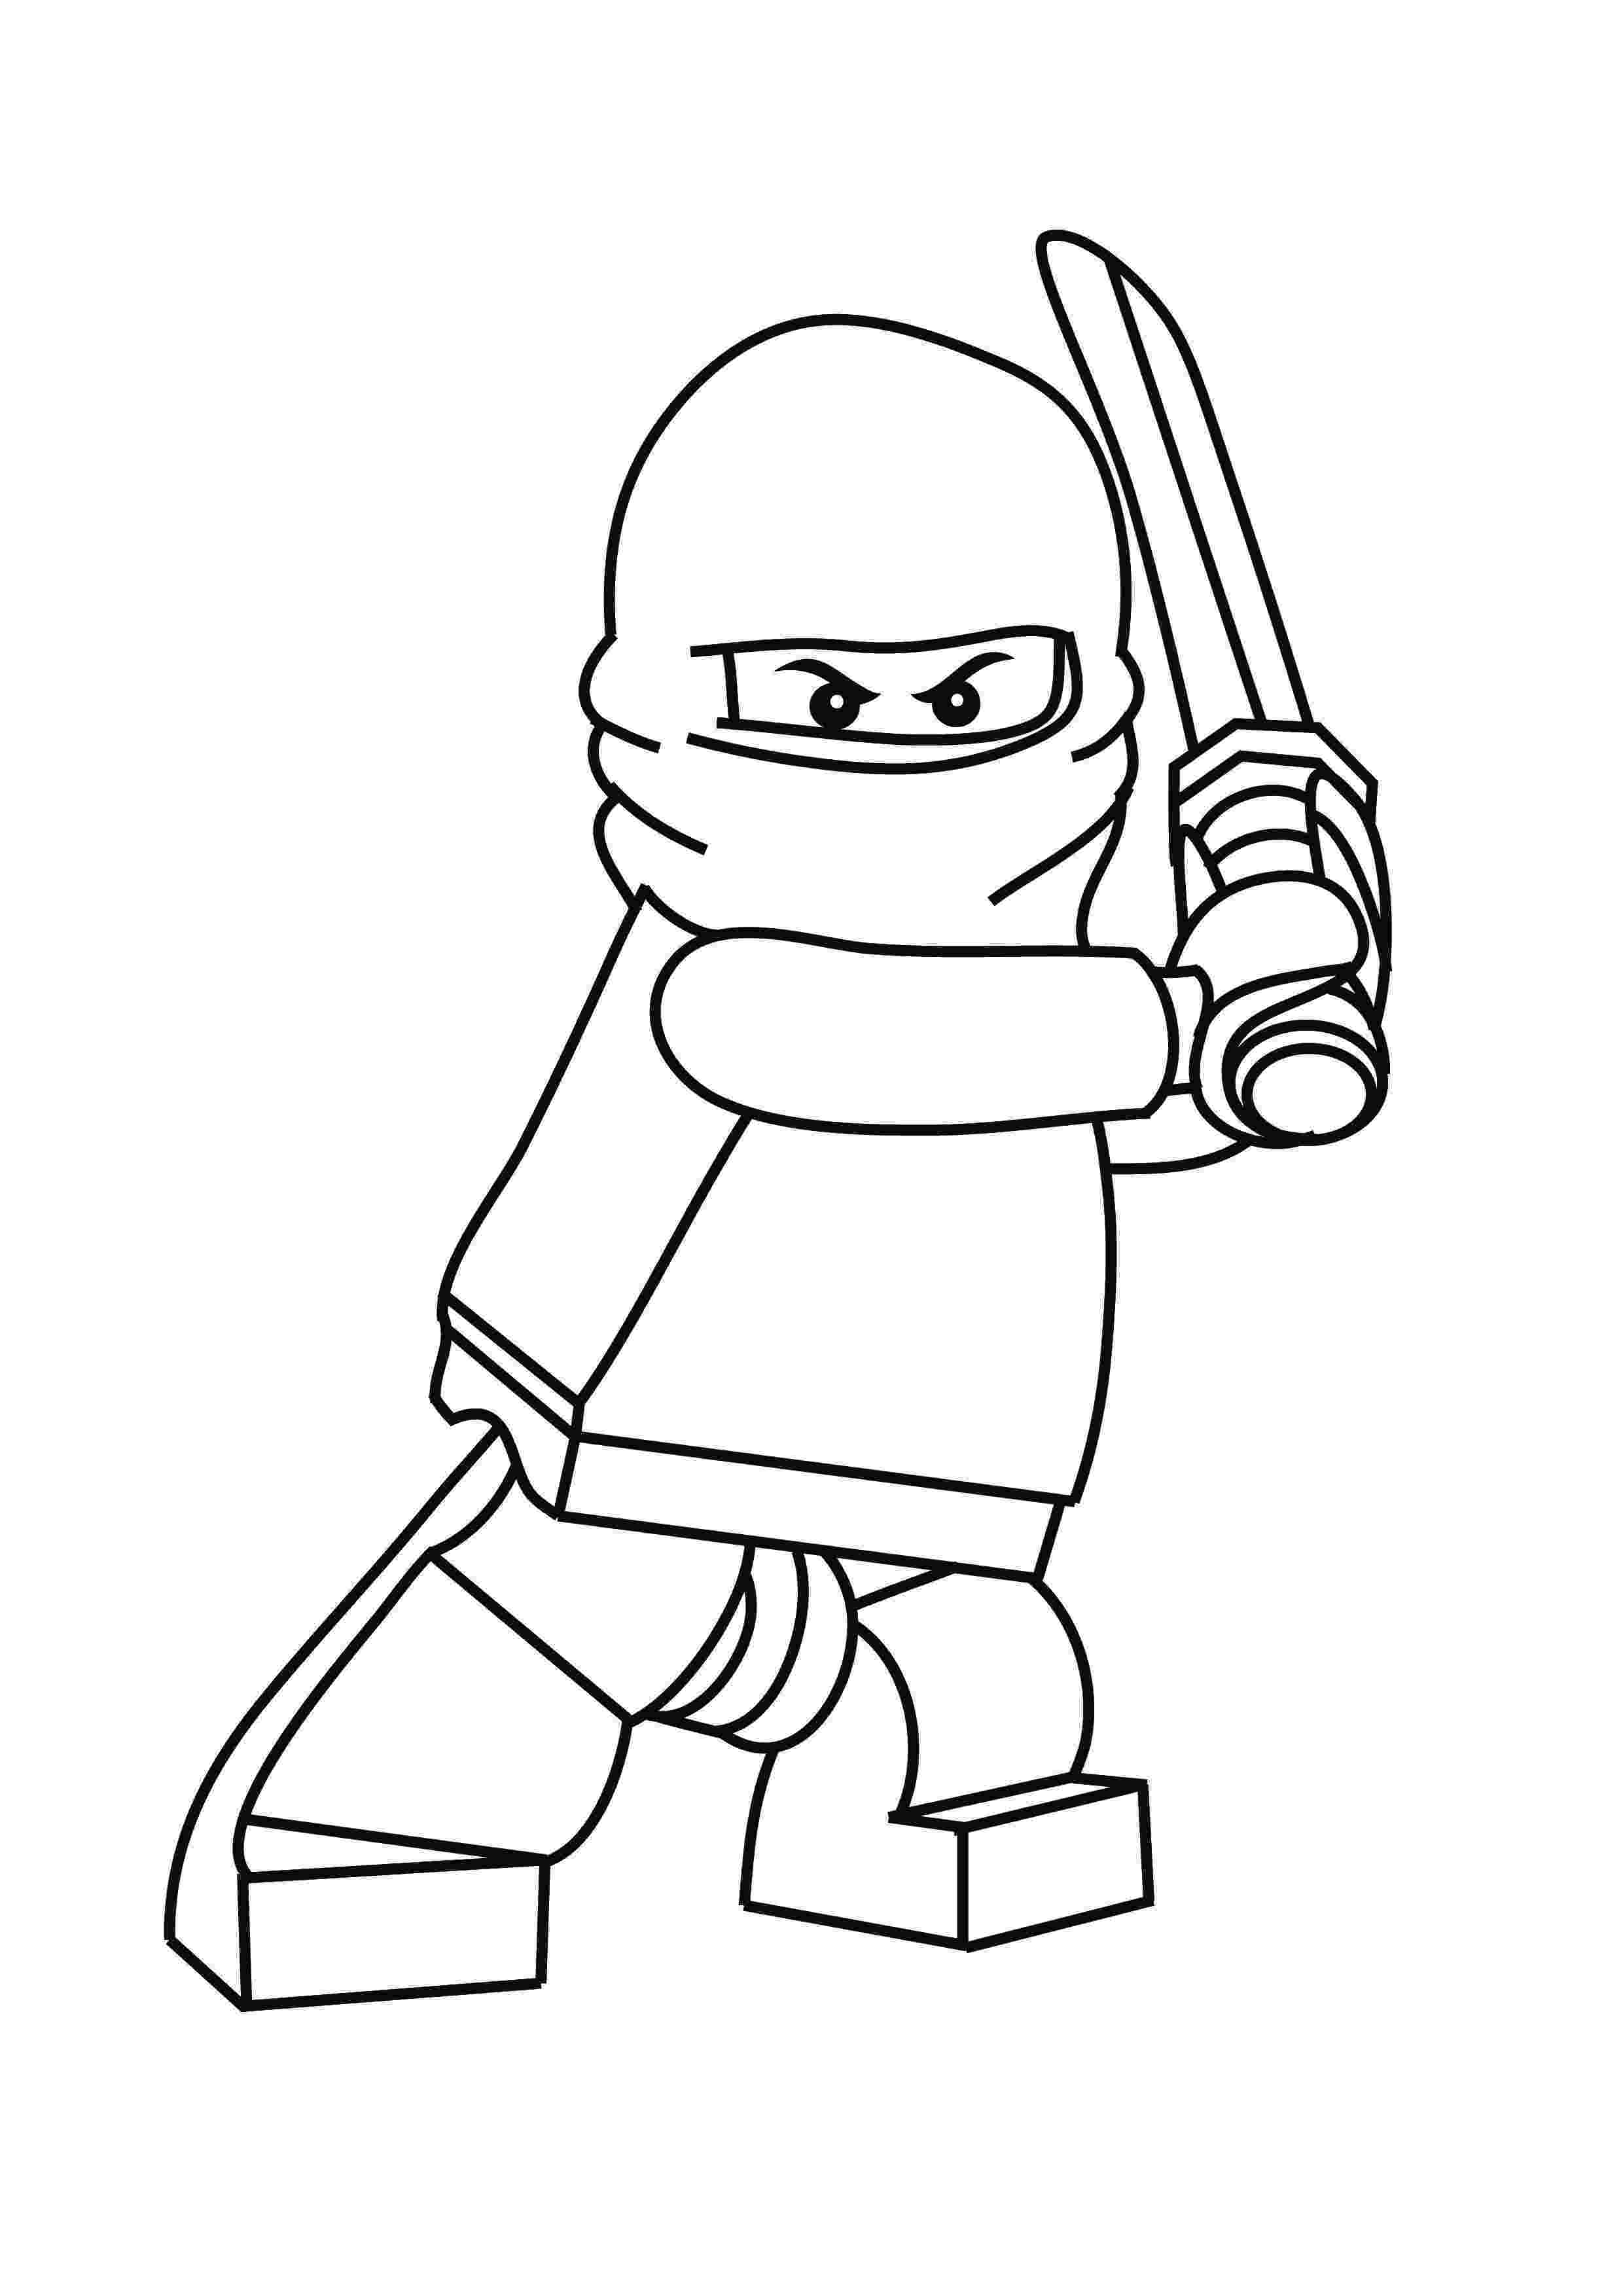 lego coloring free printable lego coloring pages for kids cool2bkids lego coloring